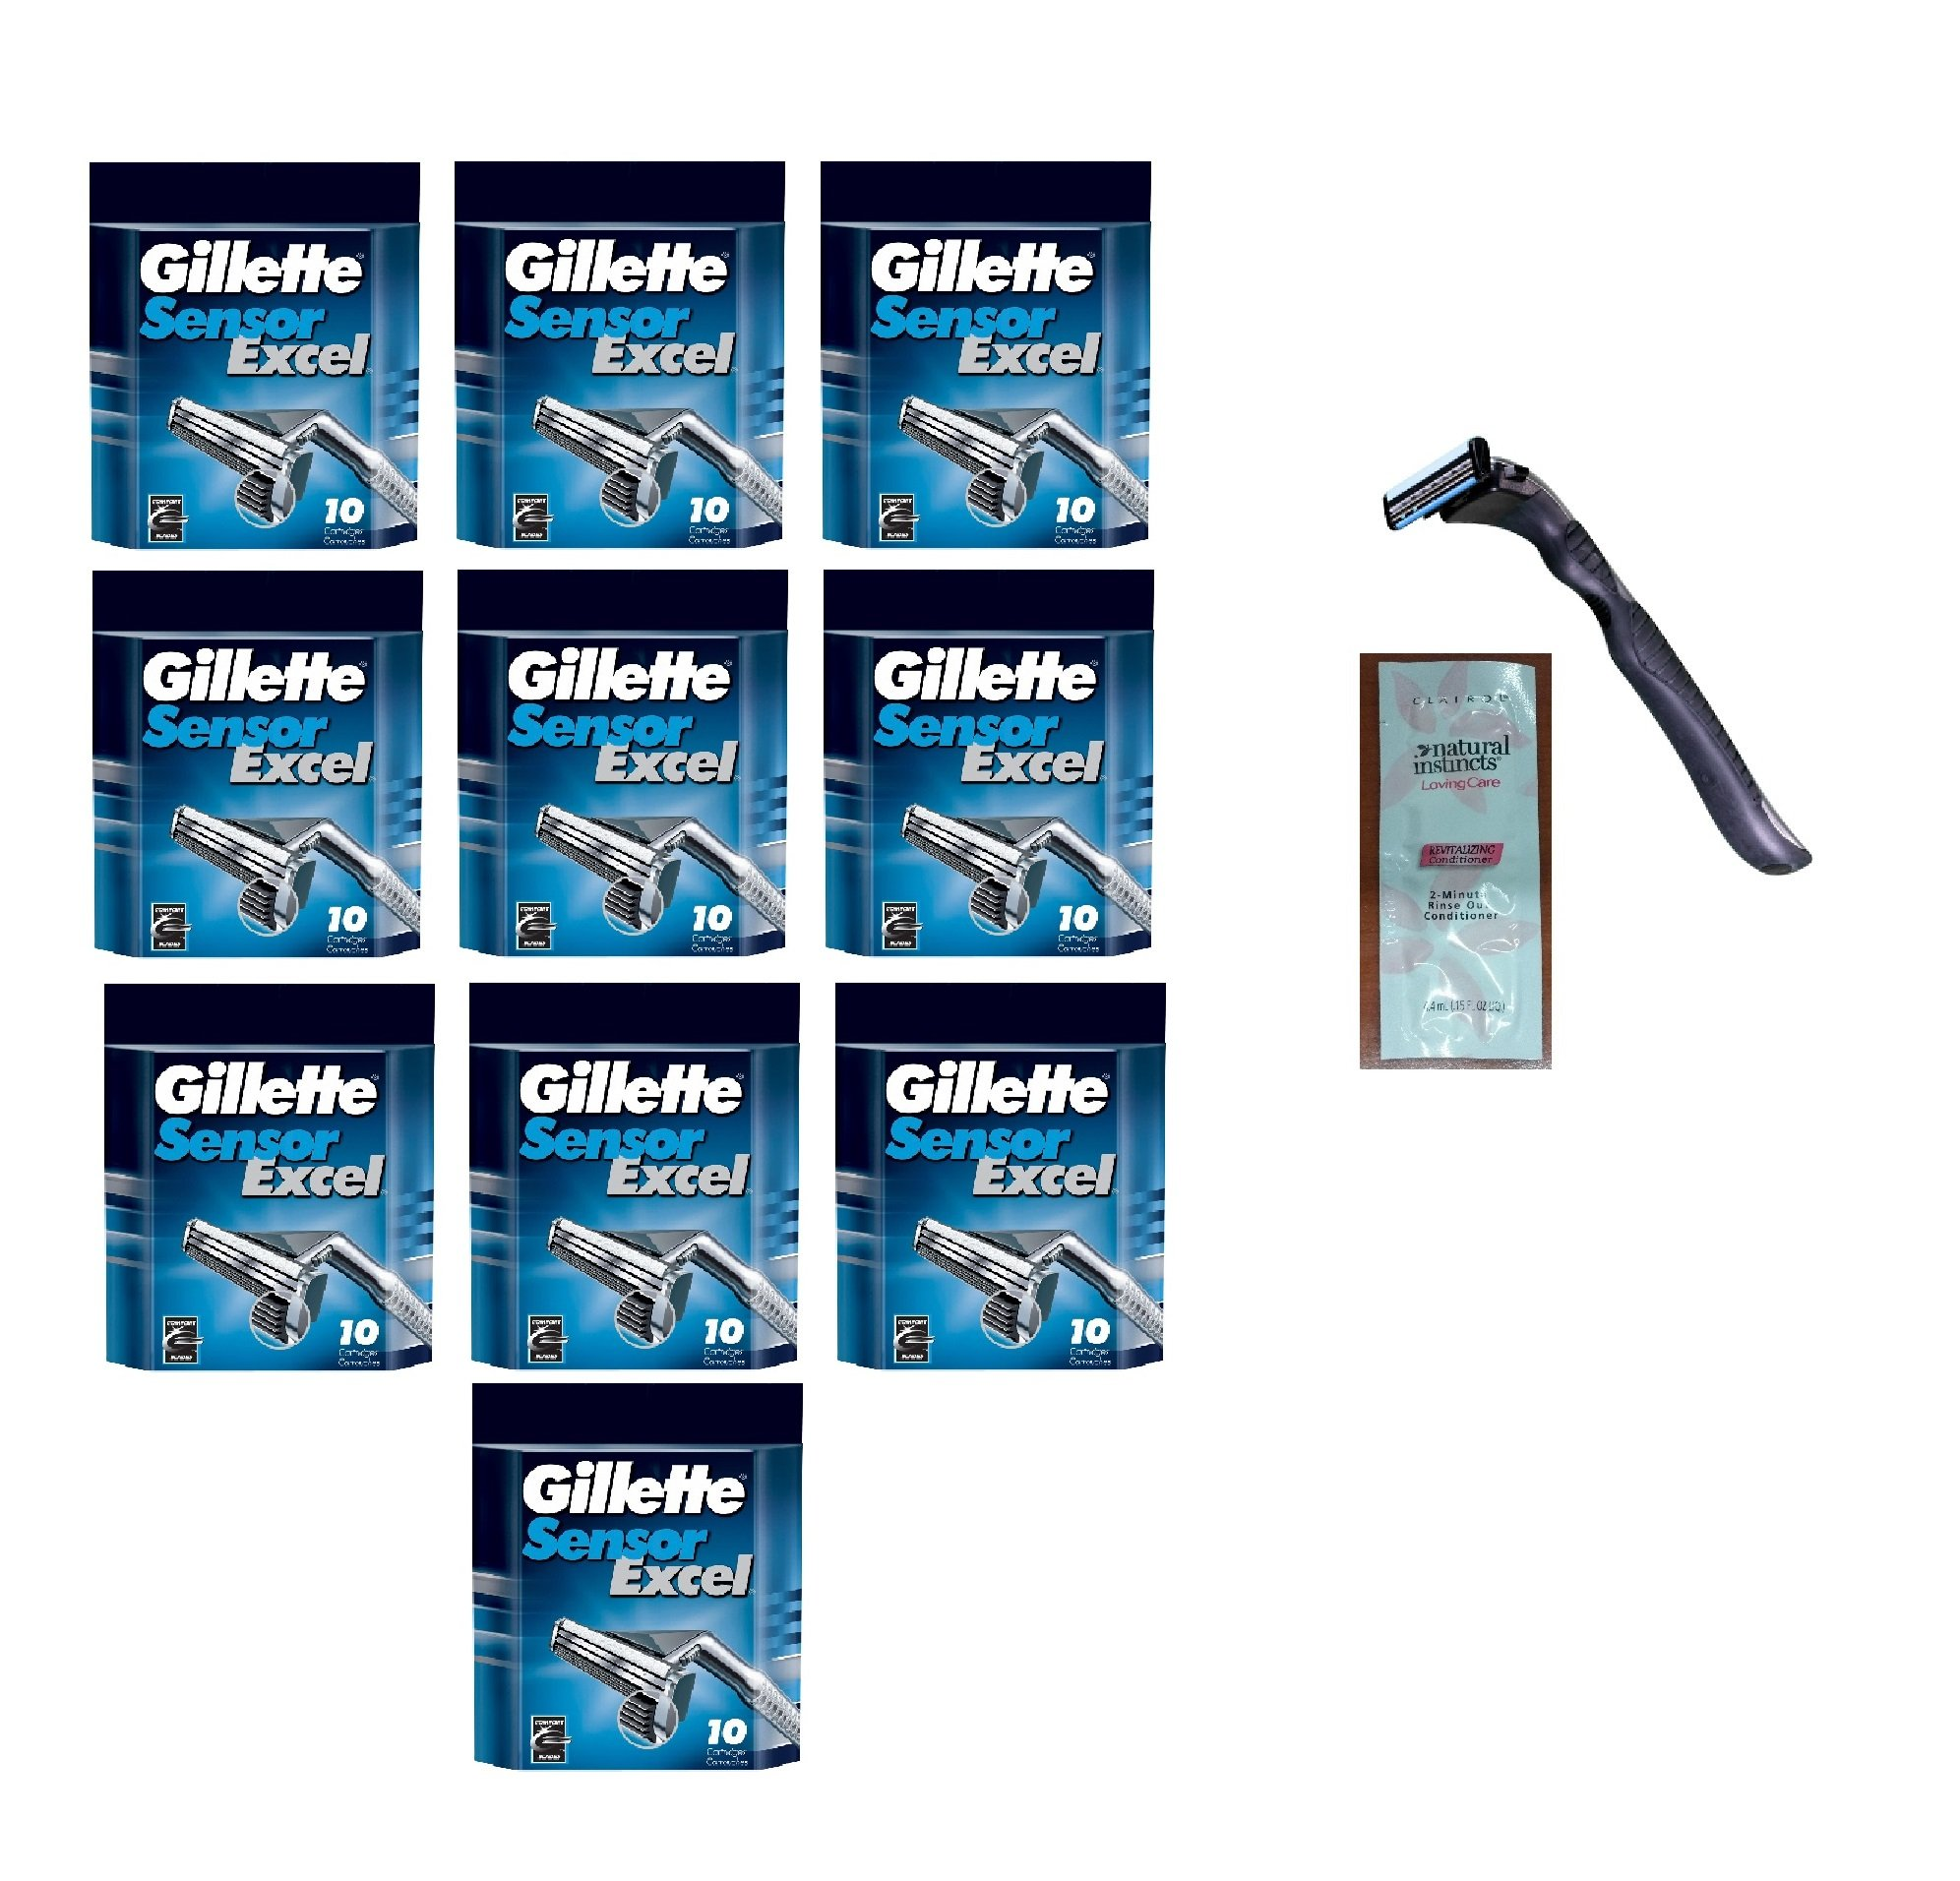 Compatible Razor Handle + Sensor Excel Refill Razor Blade Cartridges, 10 Ct. (handle holds Sensor Excel Blades) (Pack of 10) with FREE Loving Color trial size conditioner . World's Best Razor Holder ! Quality that is Out of This World ! Durable & Rugged !